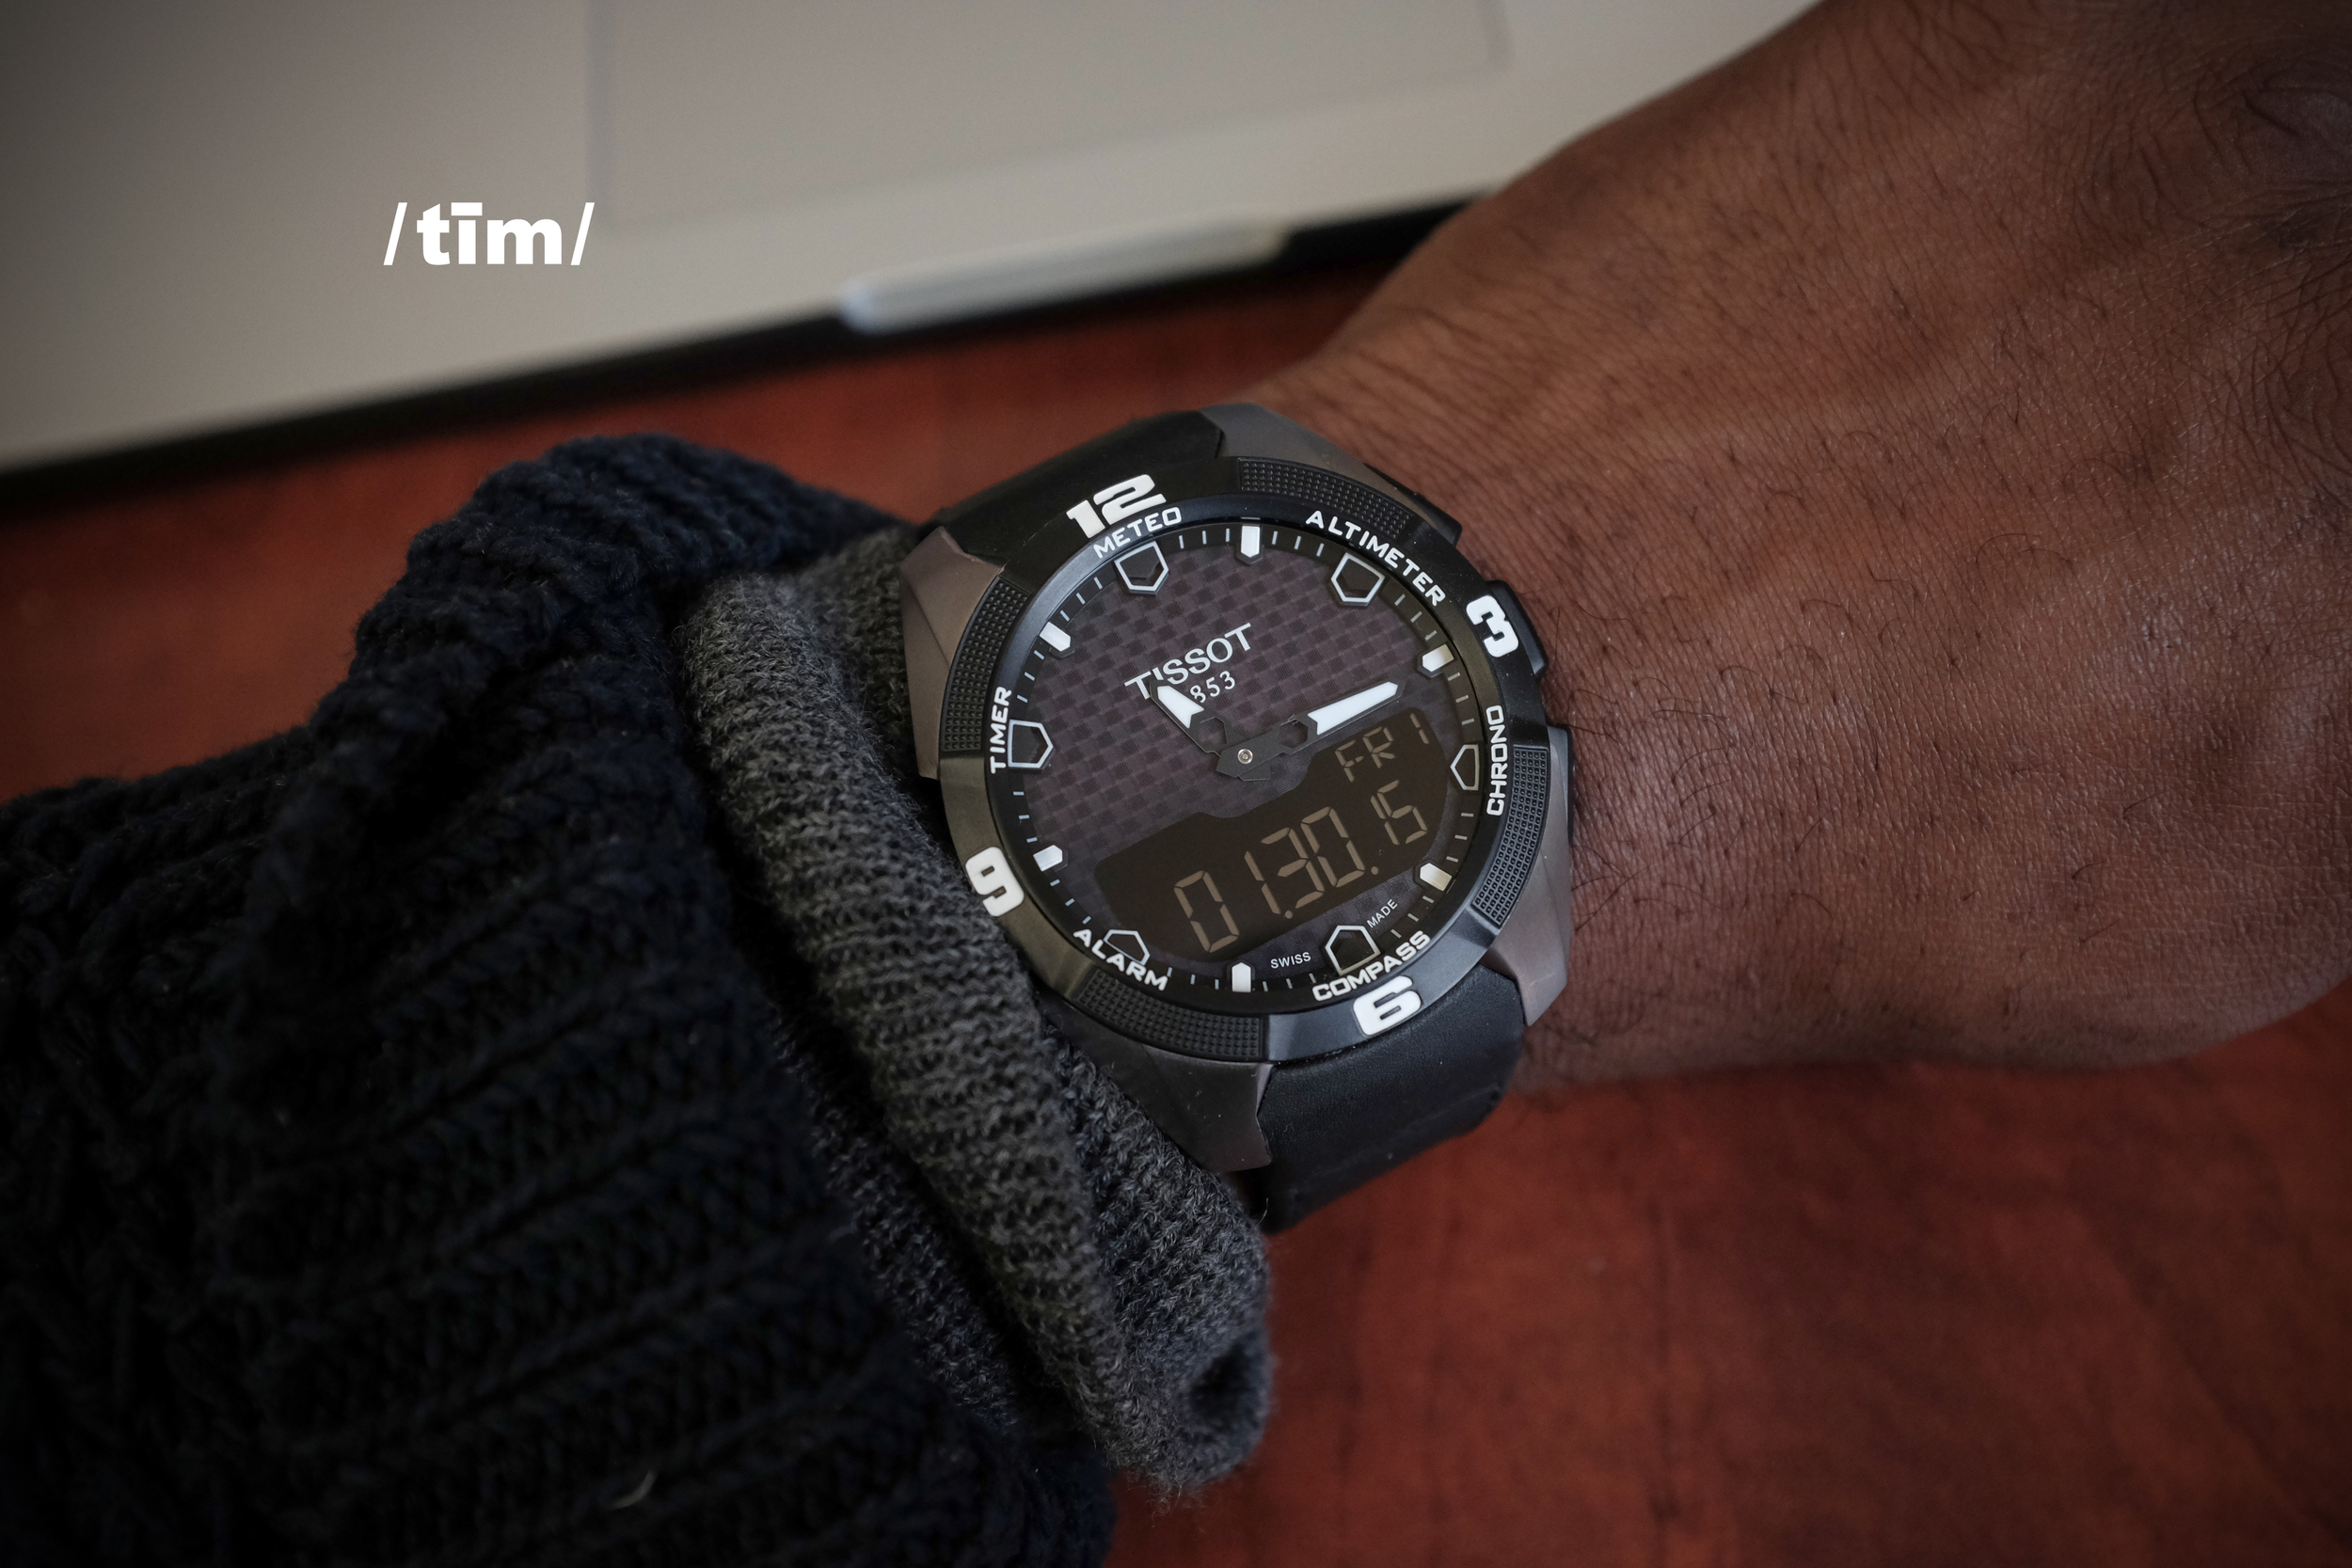 """Today, we talk about the upgrade. Most people think that means you have to go spend a ton of money... That in itself is NOT an upgrade.   First off, please let me preface this by saying I am not a watch expert. I am not the most well versed person when it comes to movements and complications. I do know a bit, because I don't just jump into everything without understanding some of it. That being said, I do know people. I do know social behavior and I do understand that a lot of people do not.   There are a few things on a man that are usually tell tale signs of the """"type of guy"""" he is (stylistically at least). When I talk about the upgrade, it is referring style. The most unattractive thing is to see someone that is acting to impress everyone while neglecting himself. Spending beyond you meansto get things that you think will elevate you in the eyes of others is a serious mistake. Most often, the people you want to impress, are not viewing you as you think they are. Timepieces specifically are part of a larger lifestyle. If you somehow buya $10k watch... and you can't afford to repair it if something happens to it... you've got a problem. There is a huge difference between luxury and quality. A difference that many tend to confuse. Some people see those that try to buy into a lifestyle that theycannot truly 'afford' as less respectable than if you were just content being content without.   If you can however, do your research and buy into things that are investments, or at the very least do not depreciate rapidly and hold no social, practicalor aesthetic value.   This brings me to my subjects!!!!  My everyday watches (right now.... kinda)   Tissot T-Touch Expert Solar (smart watch pictured above)  Solar powered (never needs a battery), Touch Screen, Compass, Altimeter, Chronograph, Timer, Temperature, etc. Plus... it looks handsome, like I am a spy killer or something."""